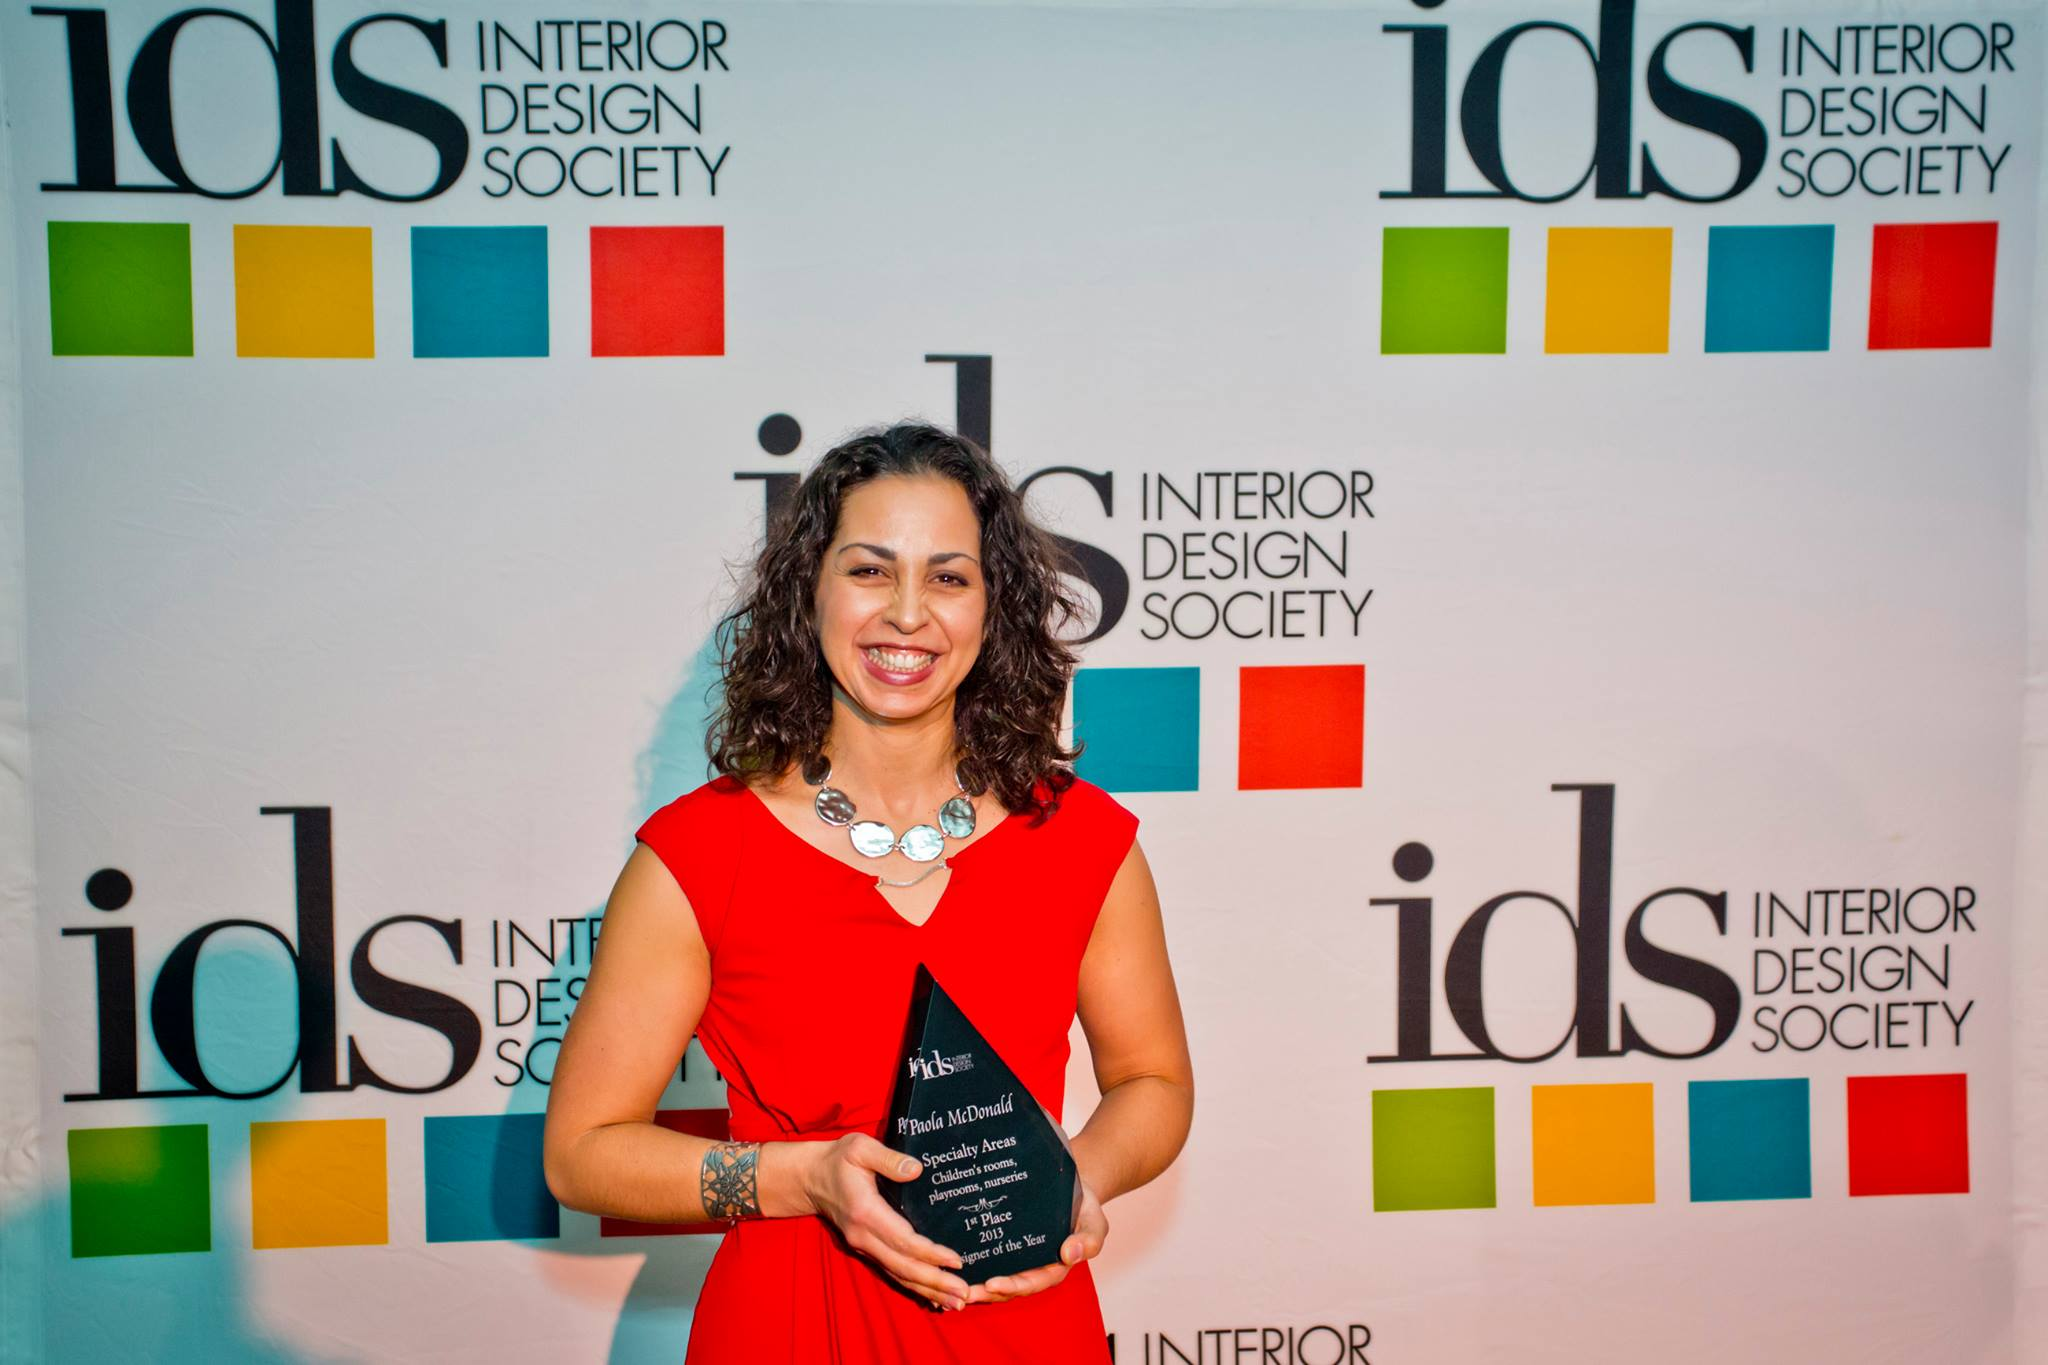 Olamar Interiors Designer And Owner Paola Mcdonald Wins Two 2013